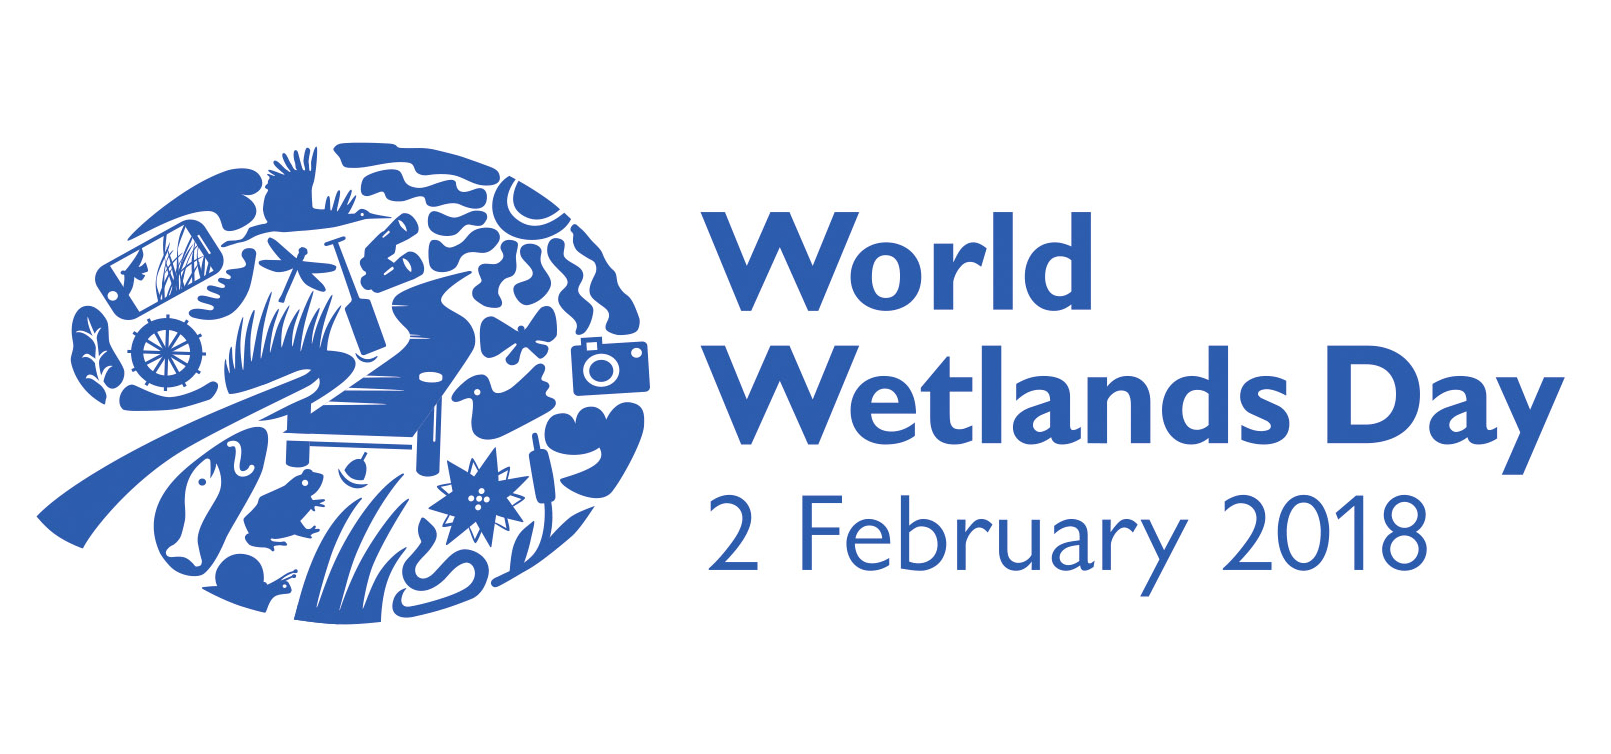 World Wetlands Day, 2 February 2018.